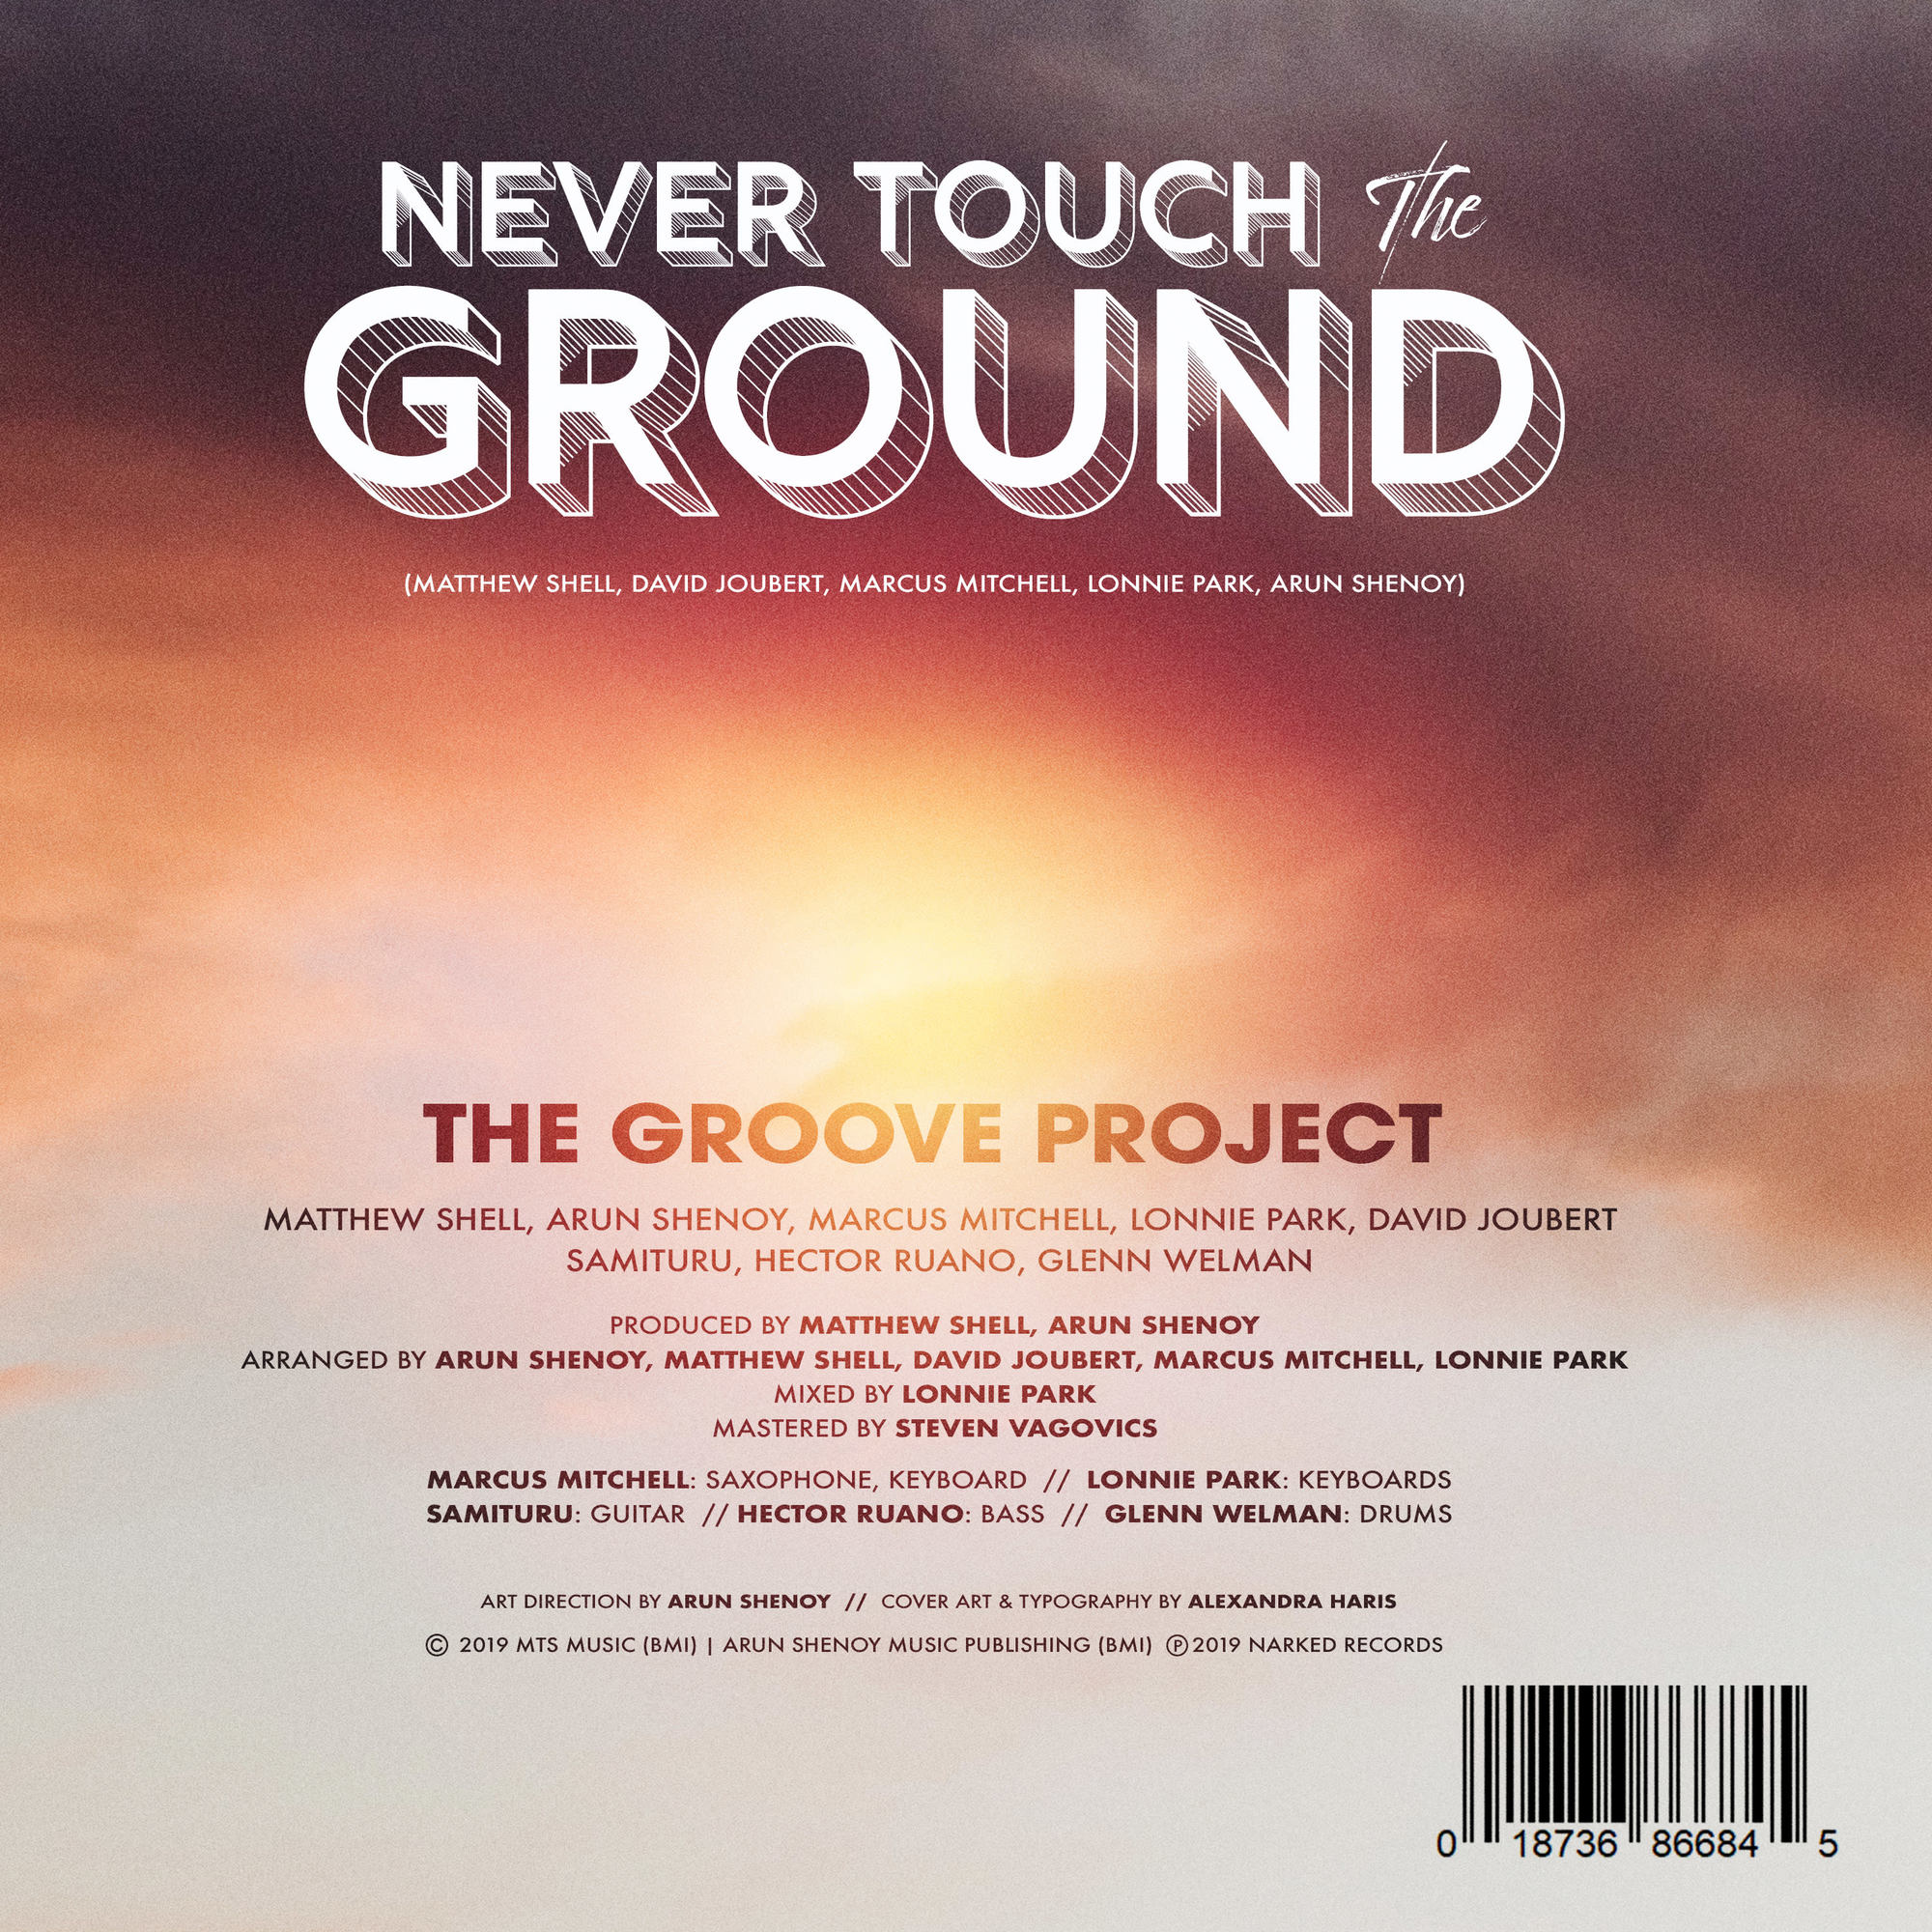 Never Touch the Ground - Credits Sheet